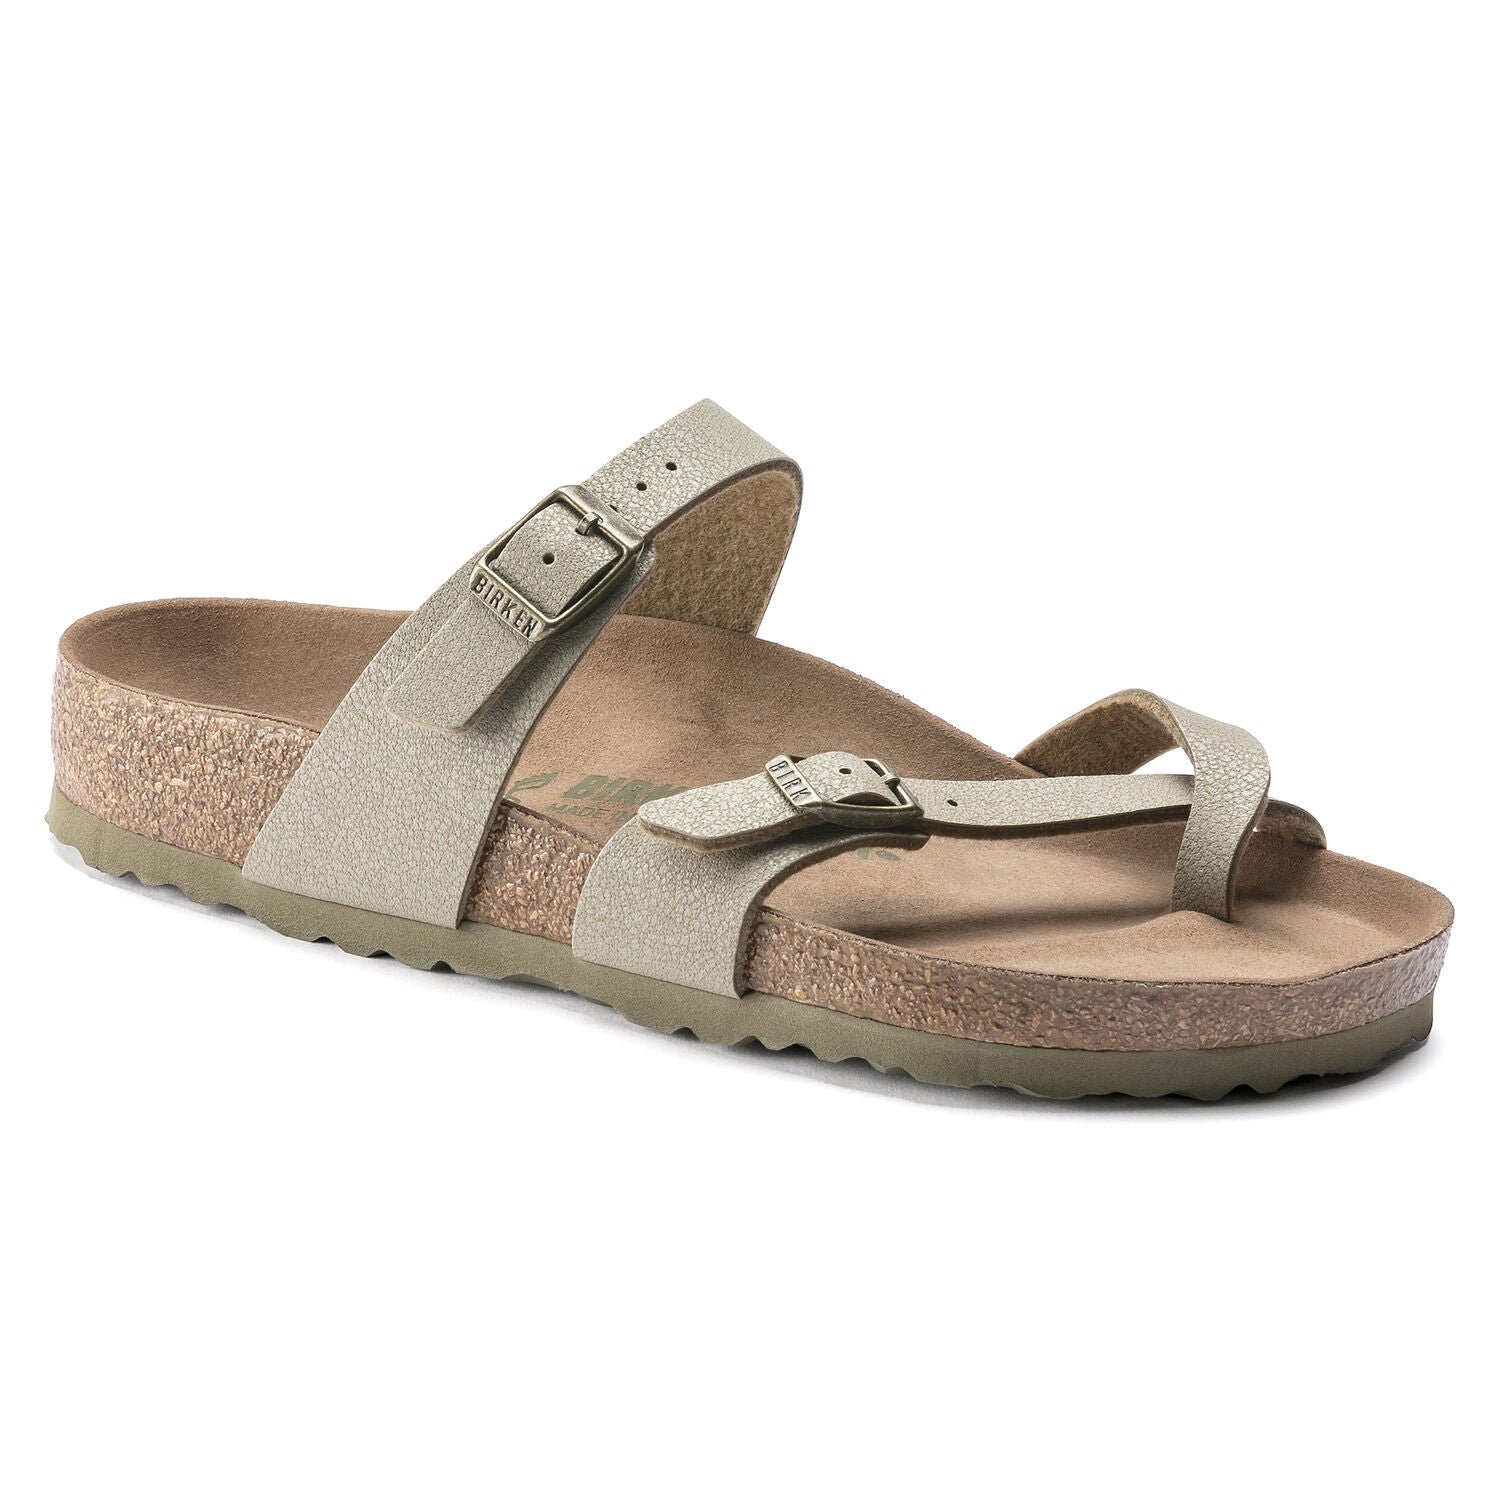 Mayari Vegan - Earthy Faded Khaki Birko-Flor